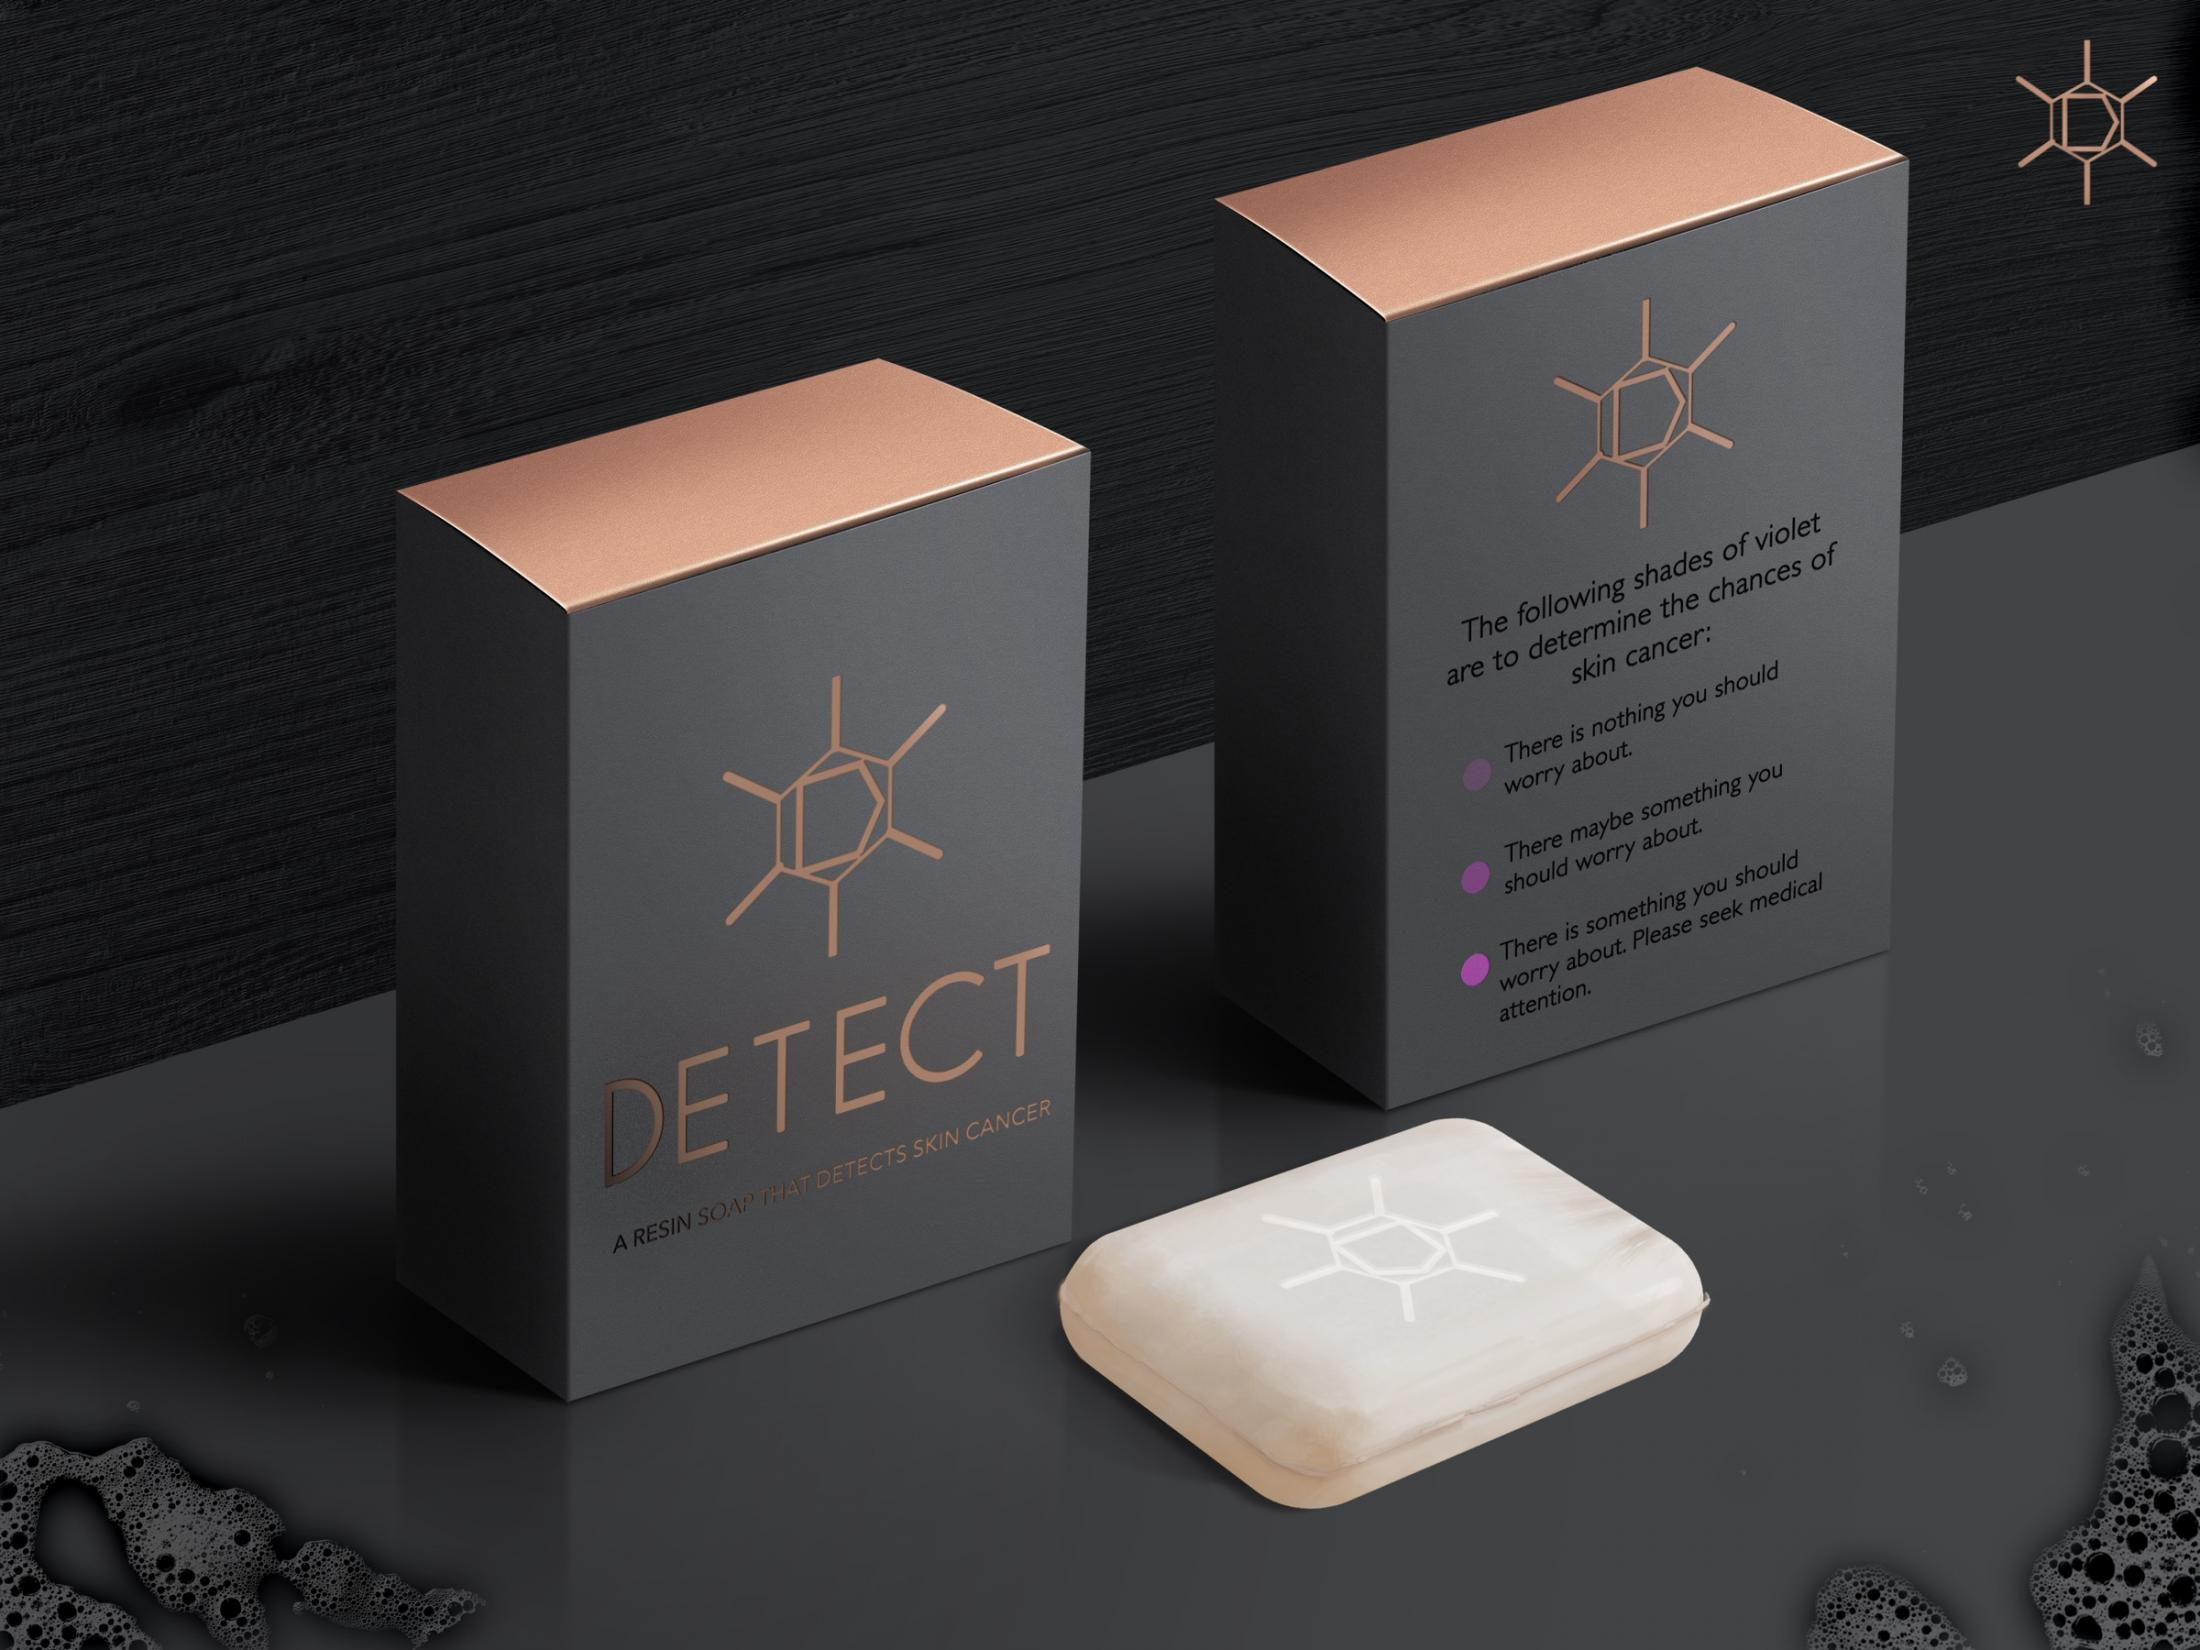 Detect Print Ad - A resin soap that detects skin cancer